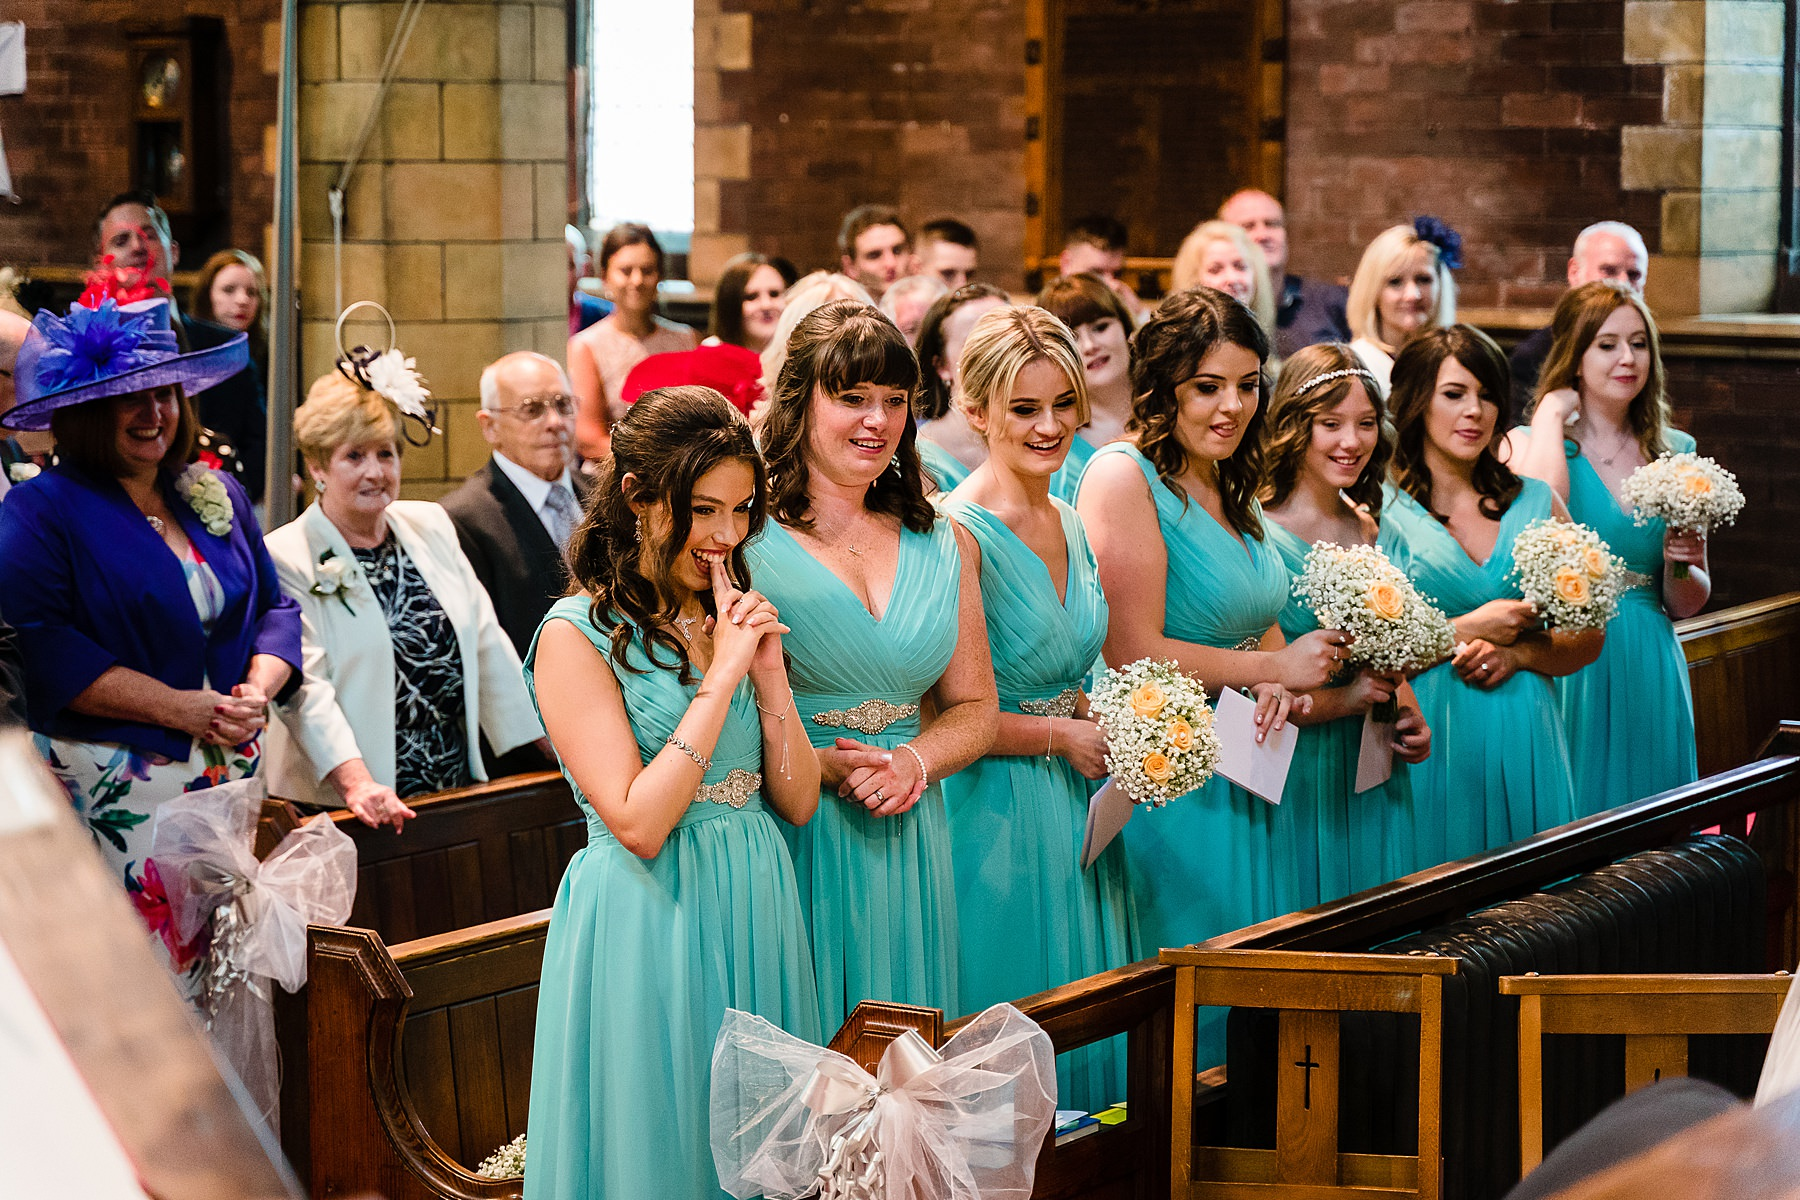 wedding ceremony at St albans stockport